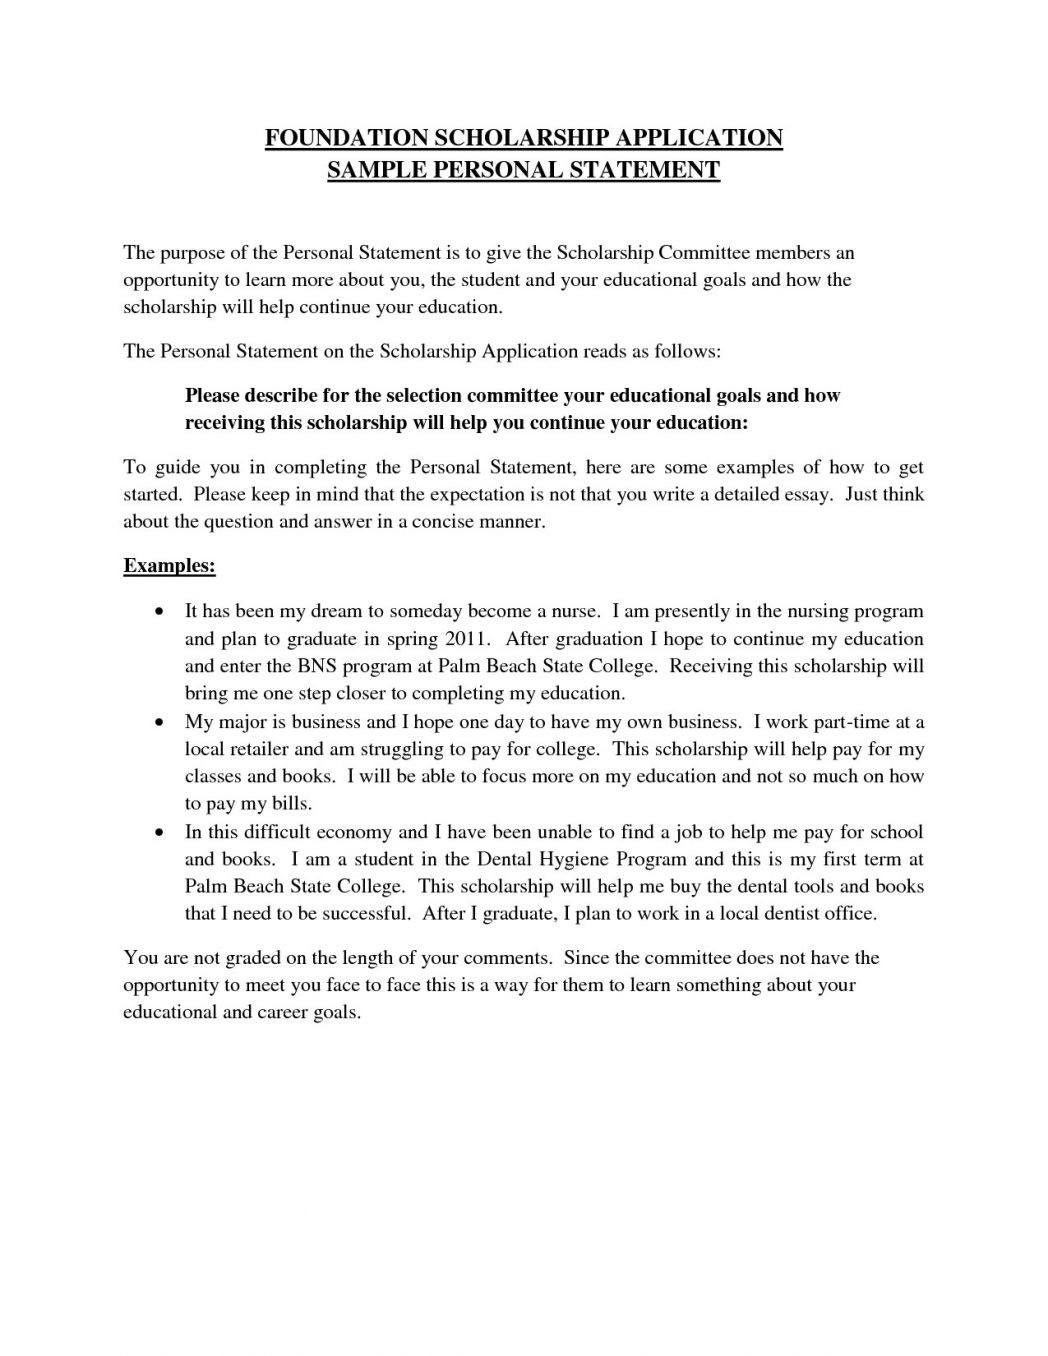 015 Scholarship Essay Examples Financial Need Example Writings And Impressive Pdf Full